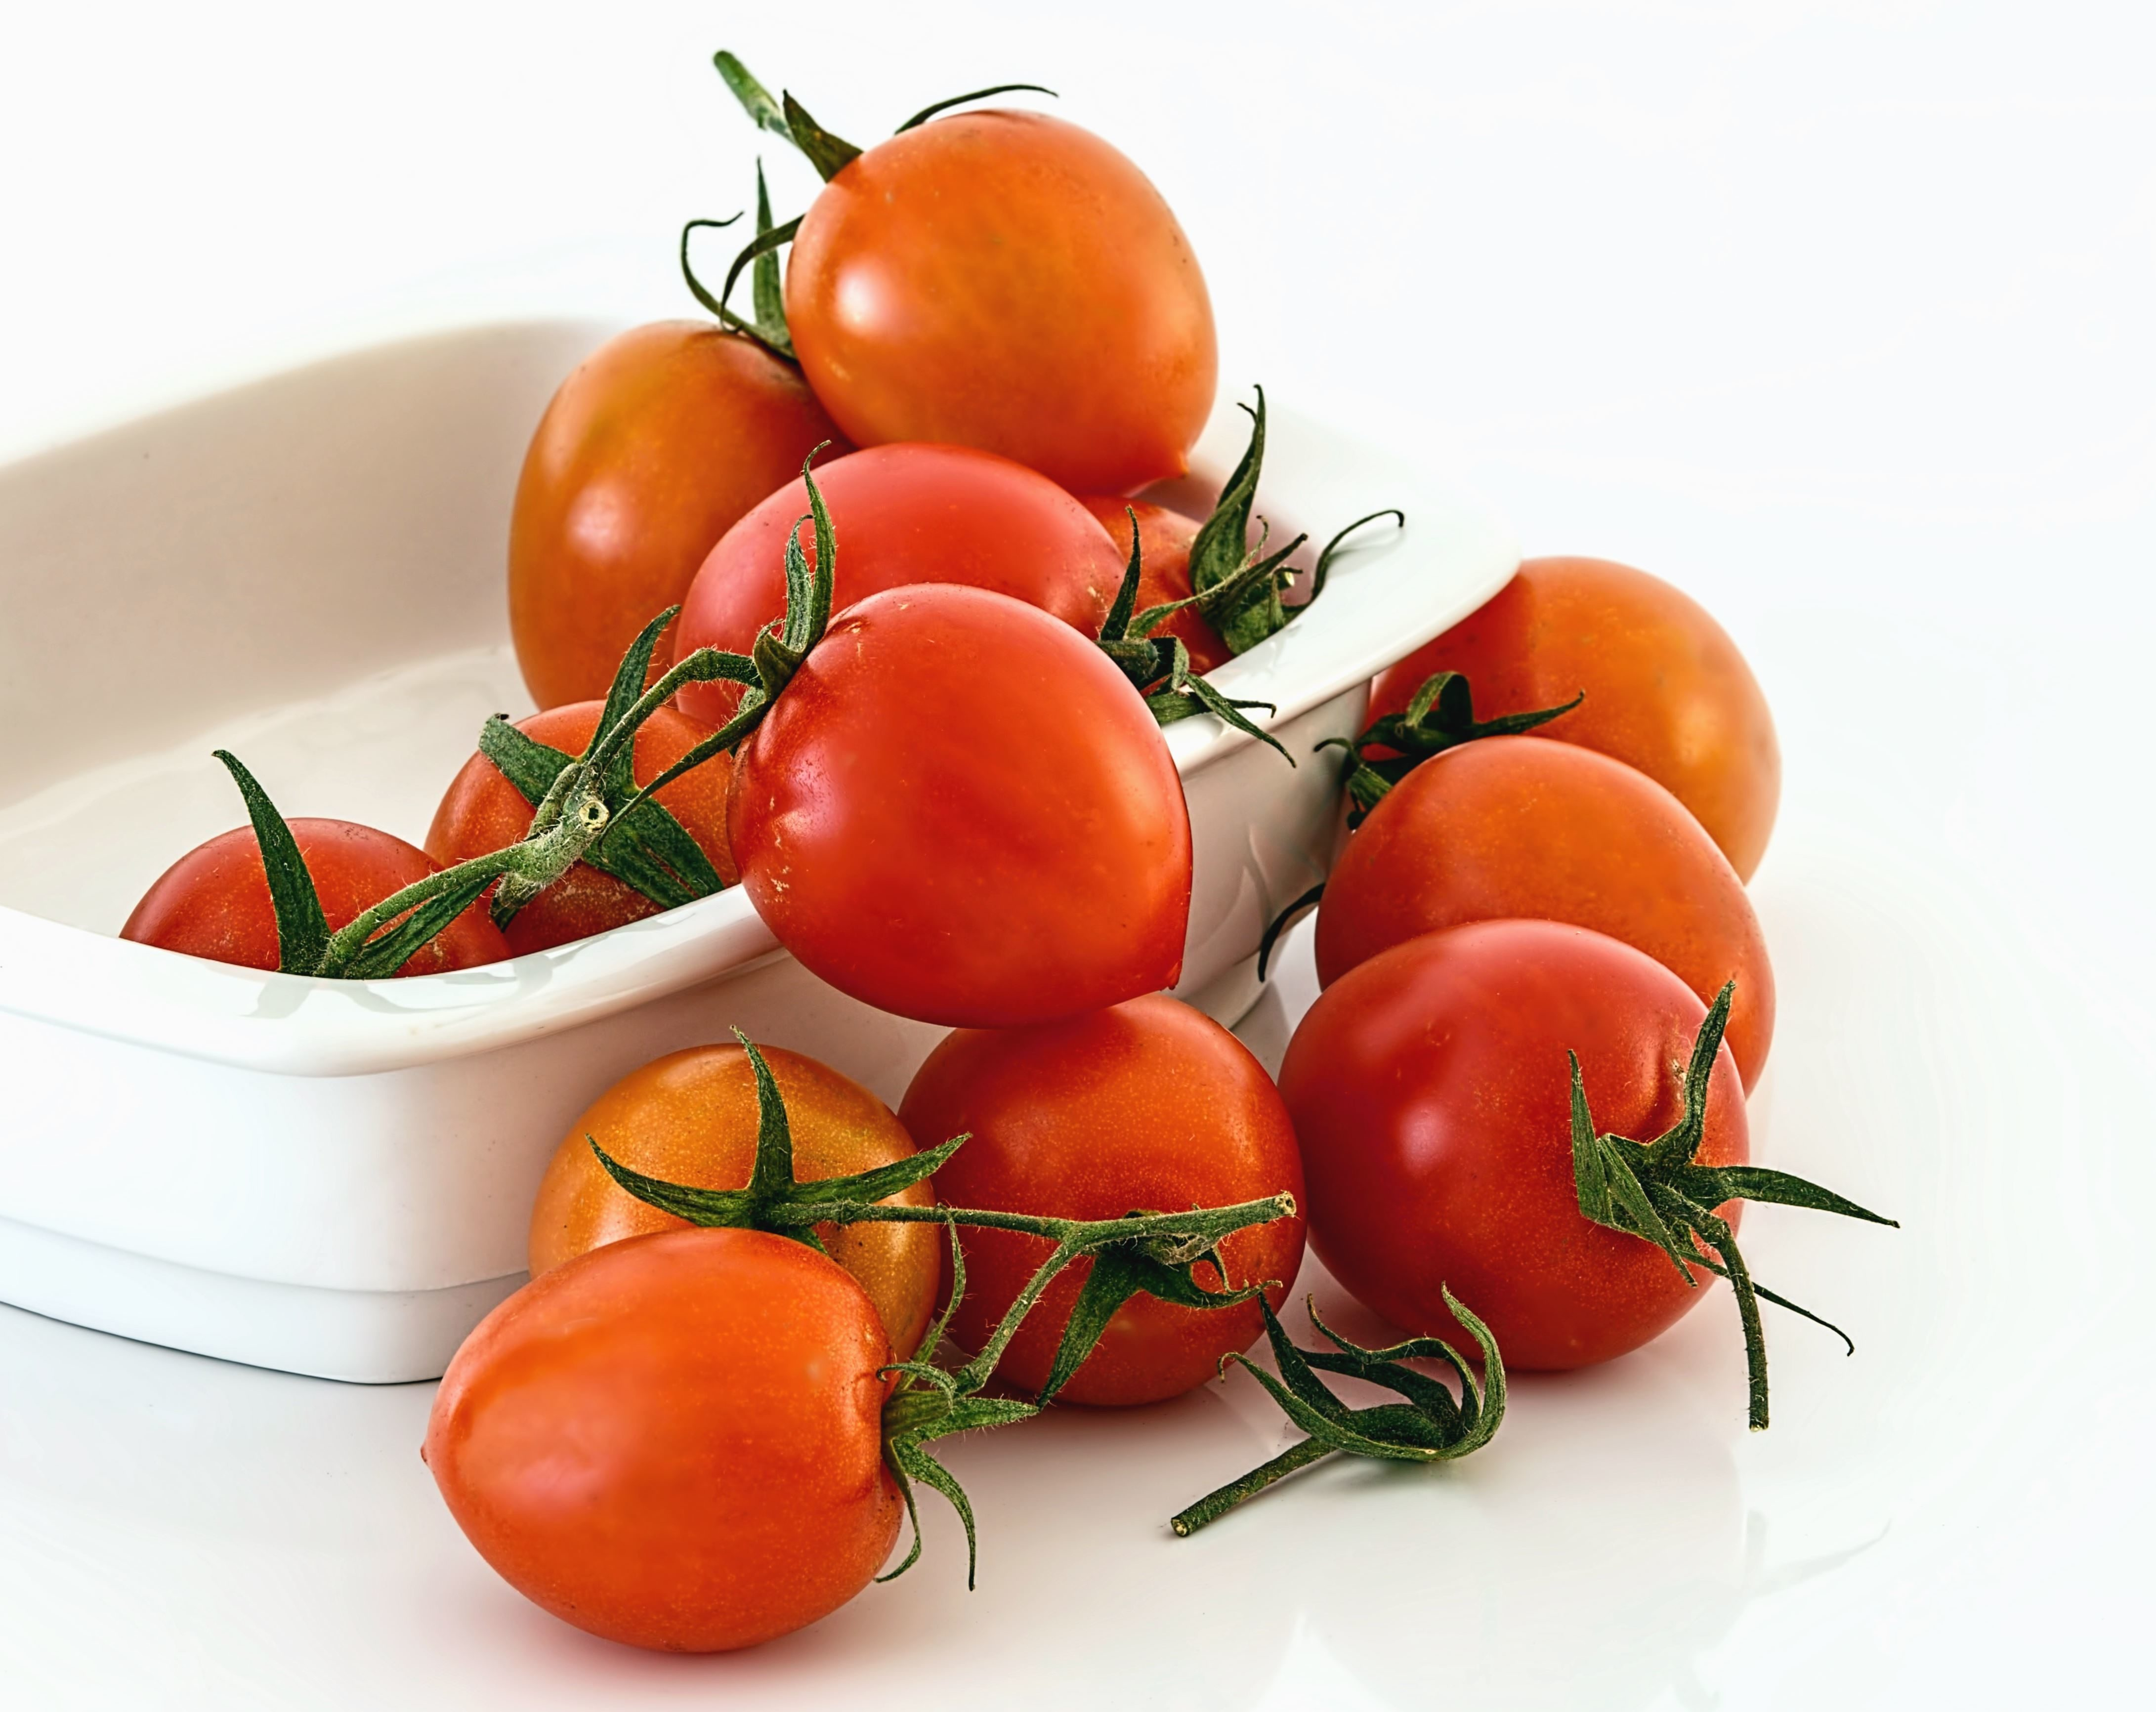 Free picture: tomato, vegetable, produce, food, tomatoes ...